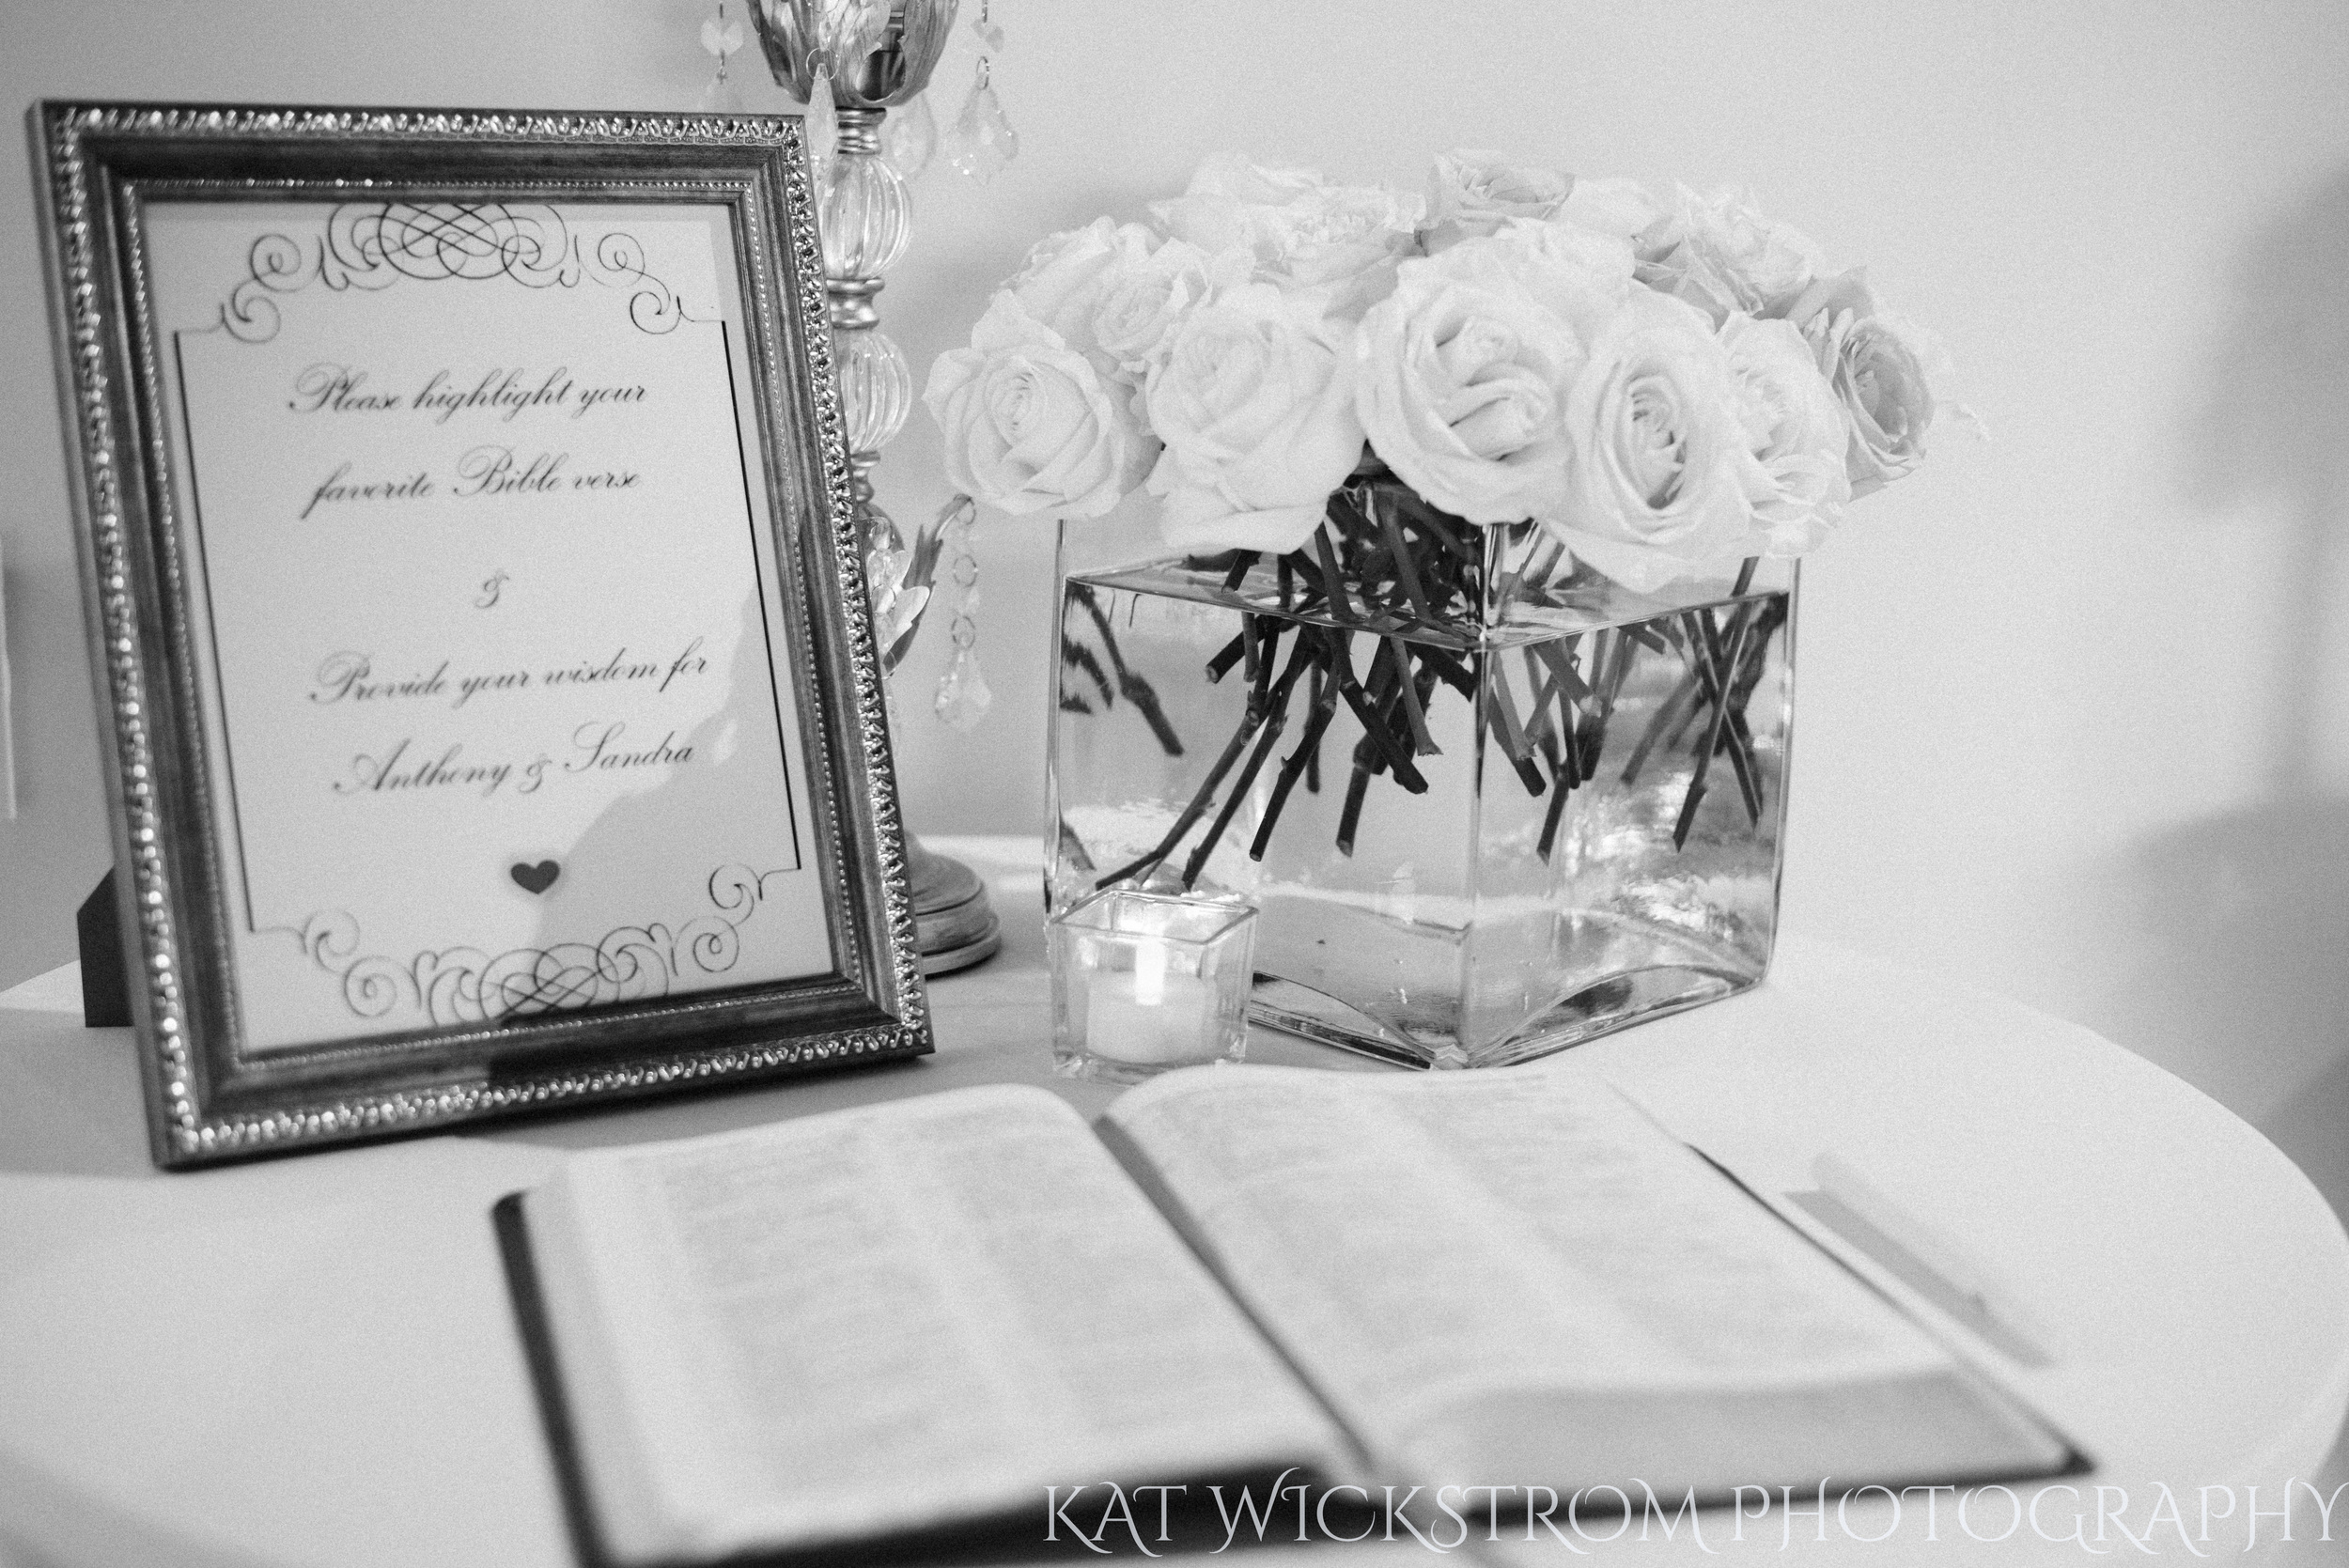 I love this greeting. The bride and groom left a bible out in front of the ceremony, asking guests to highlight their favorite passage.